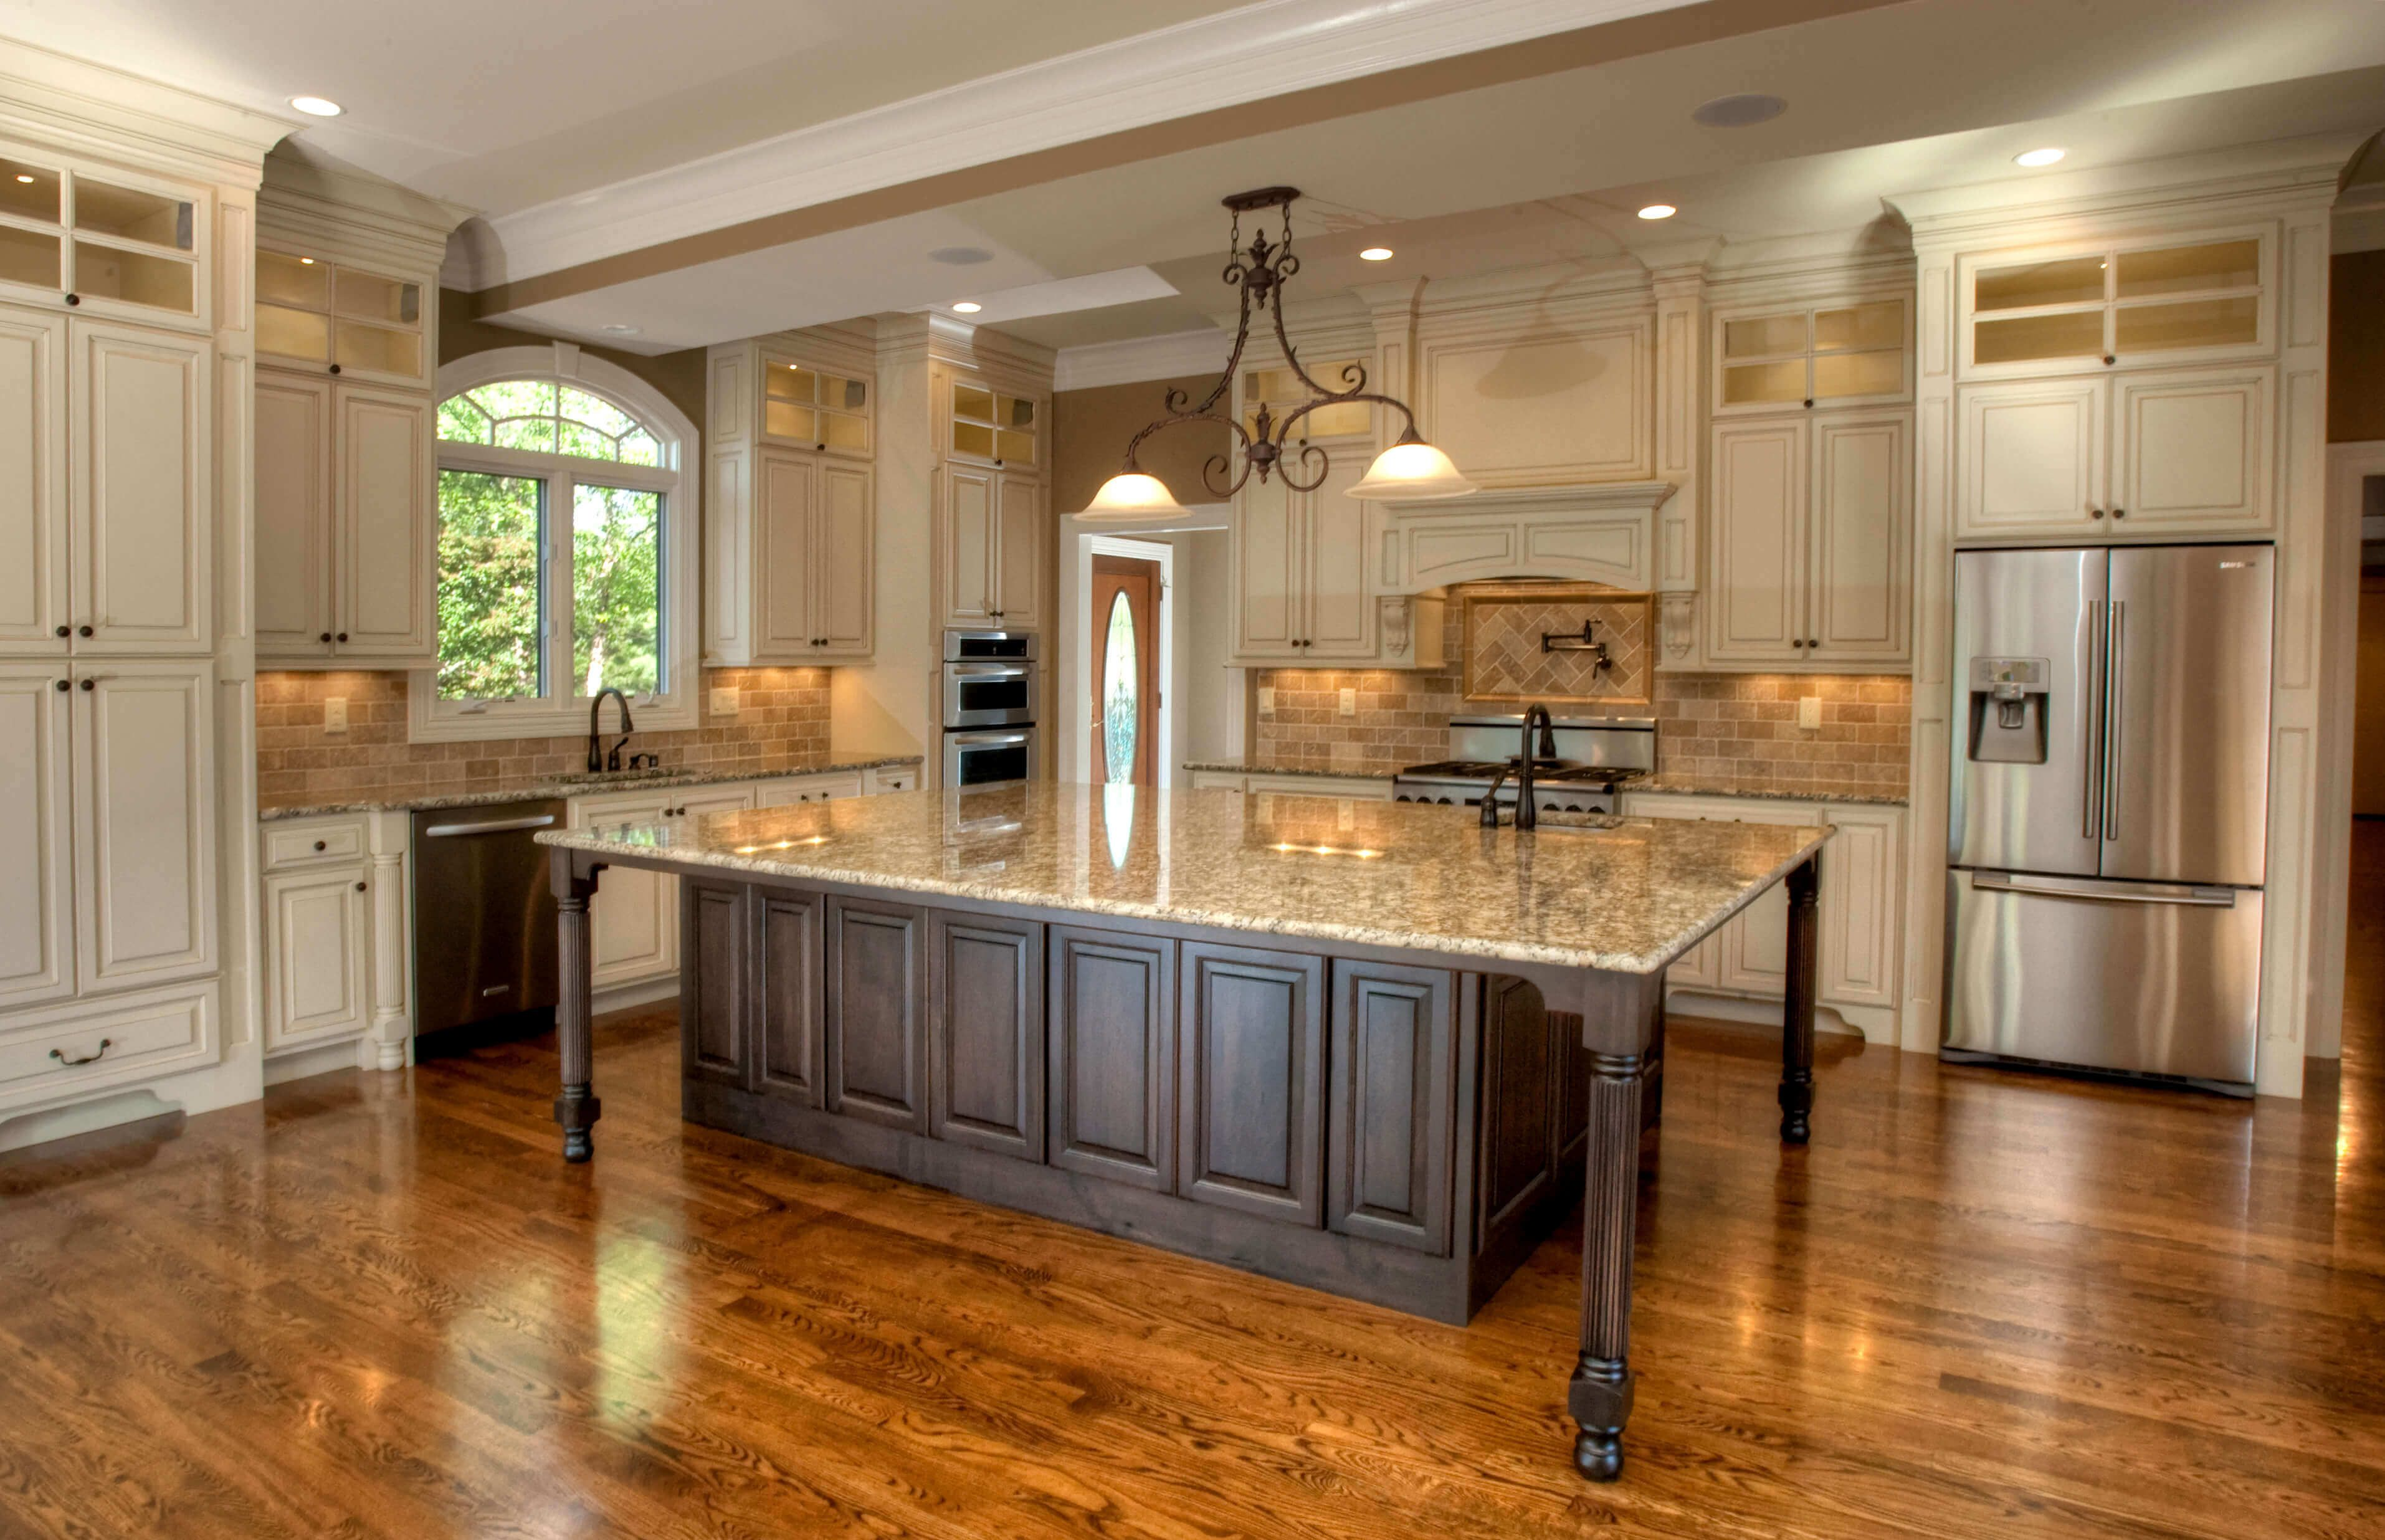 78 Great Looking Modern Kitchen Gallery Sinks Islands Appliances Lights Backsplashes Cabinets Floors And More Granite Kitchen Island Kitchen Island Design Kitchen Island With Seating